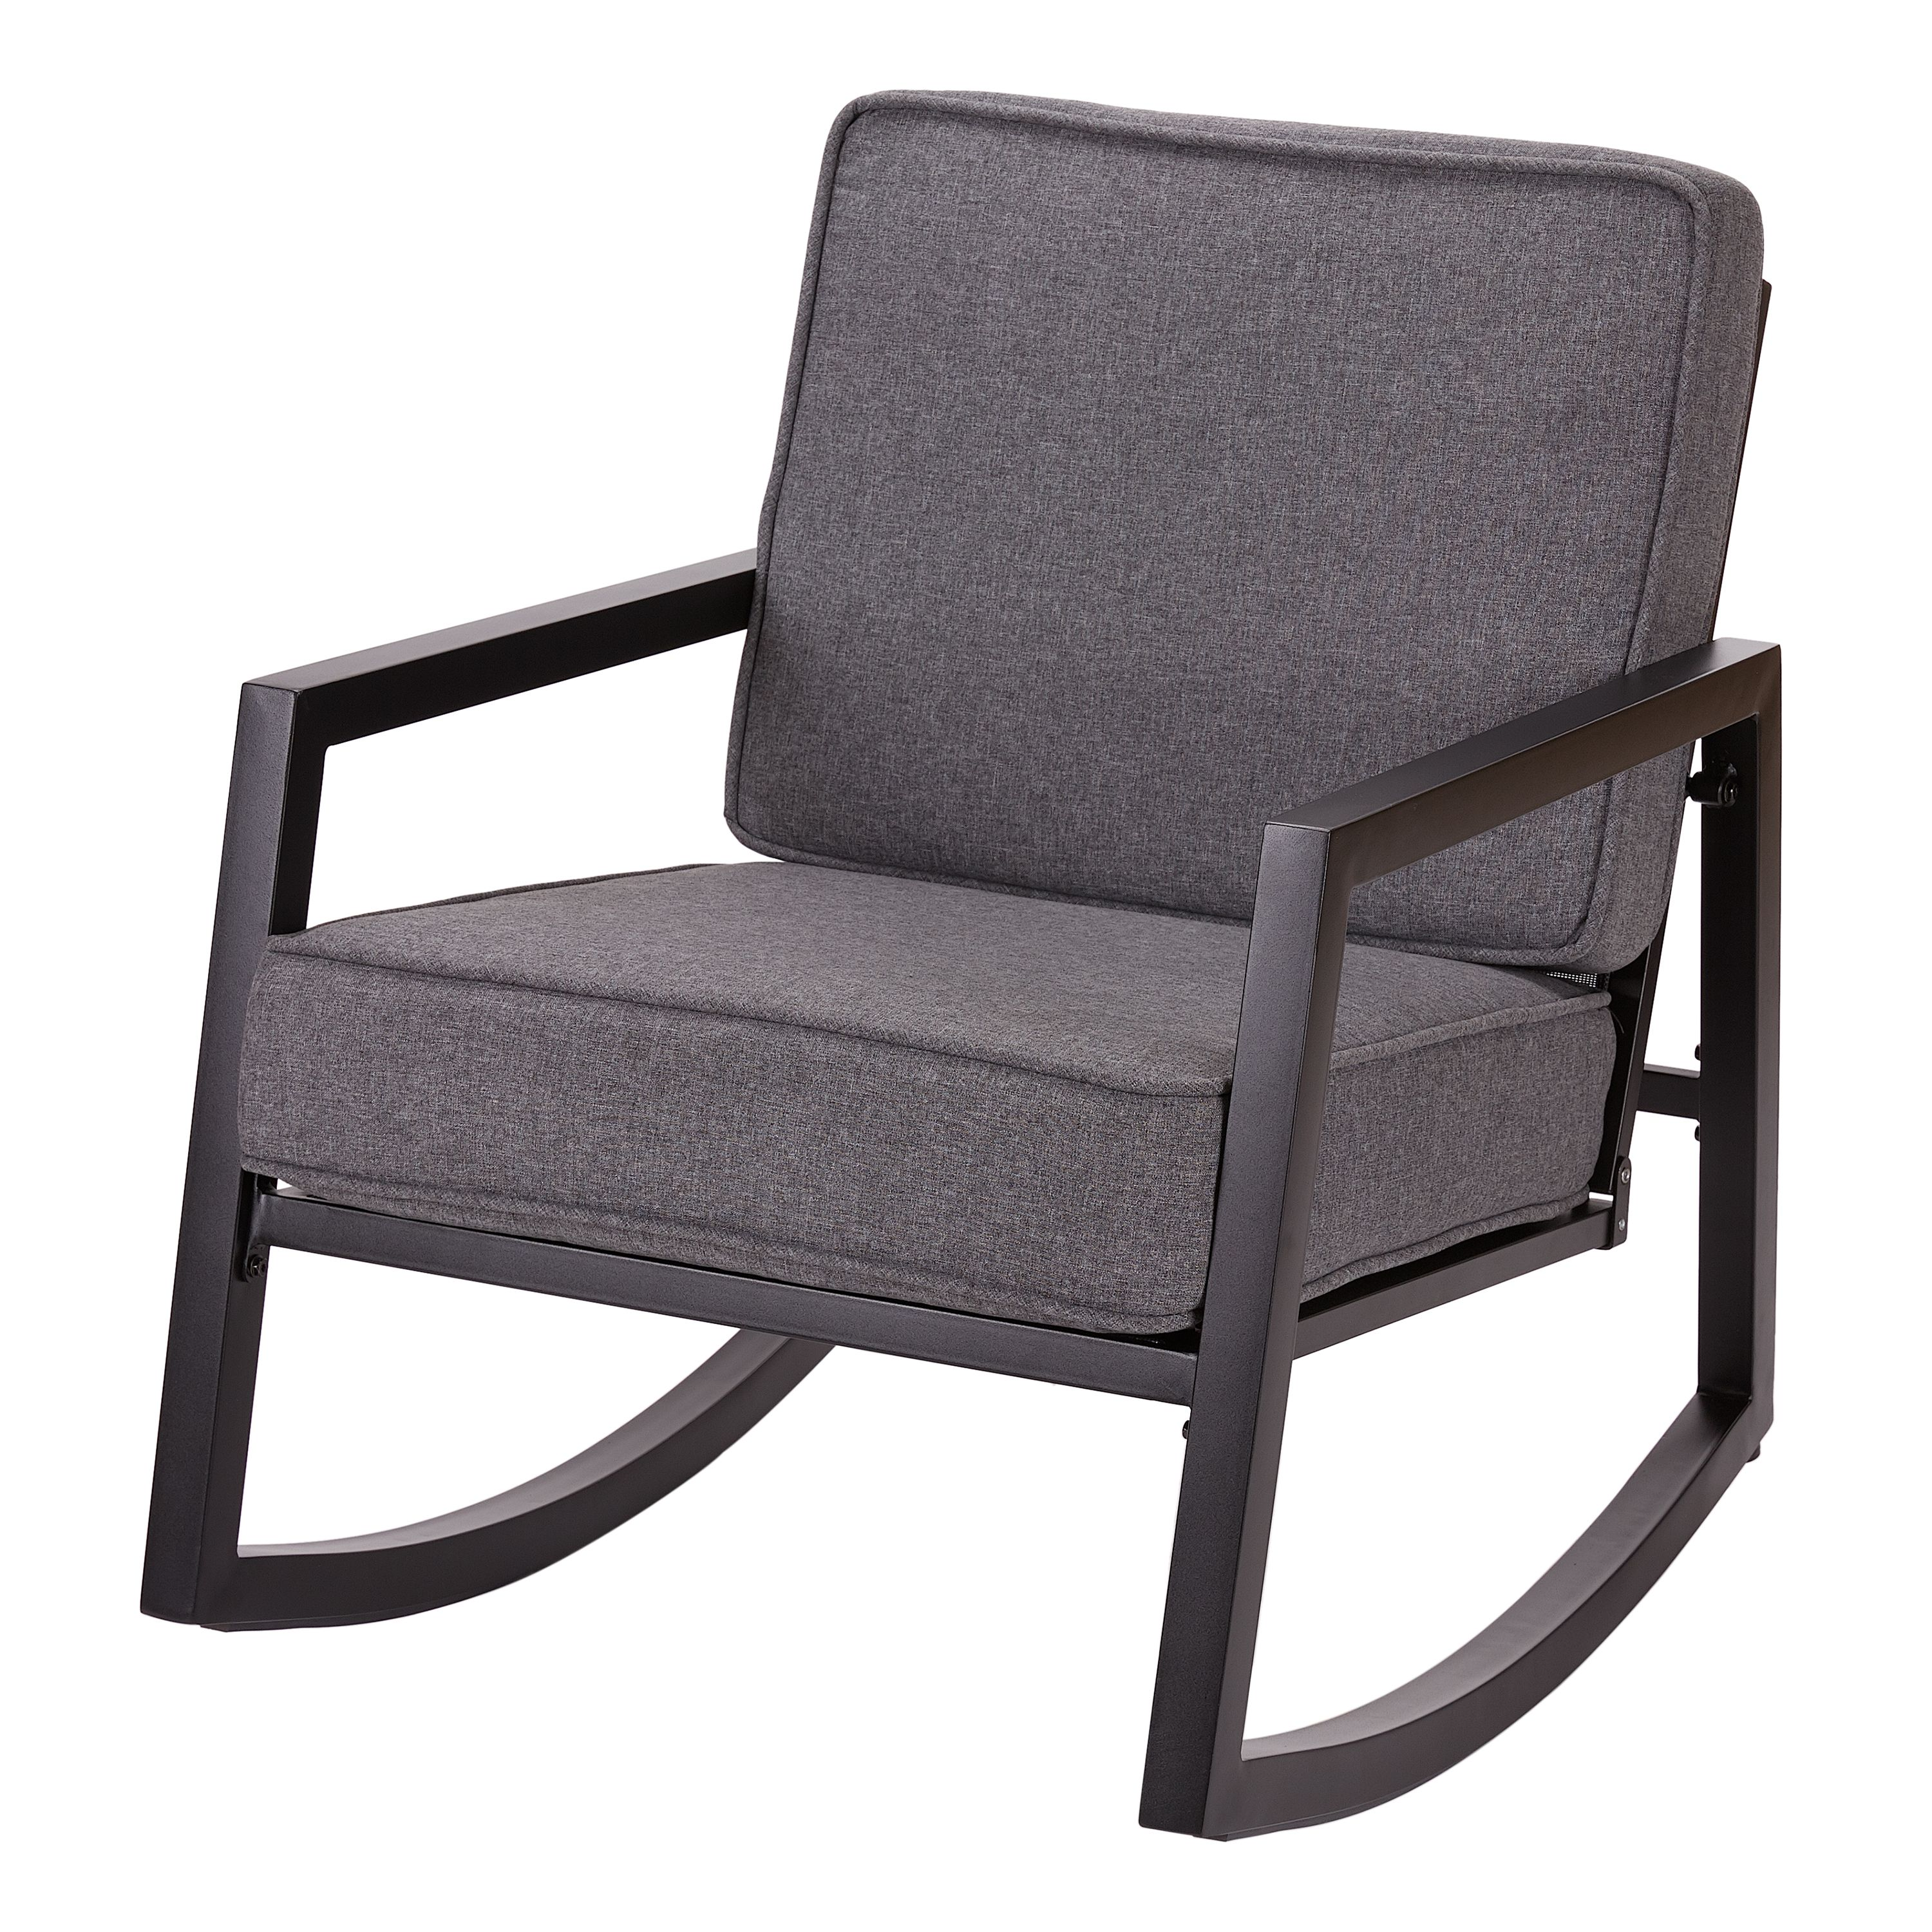 Mainstays Moss Falls Patio Rocking Chair with Gray Cushions